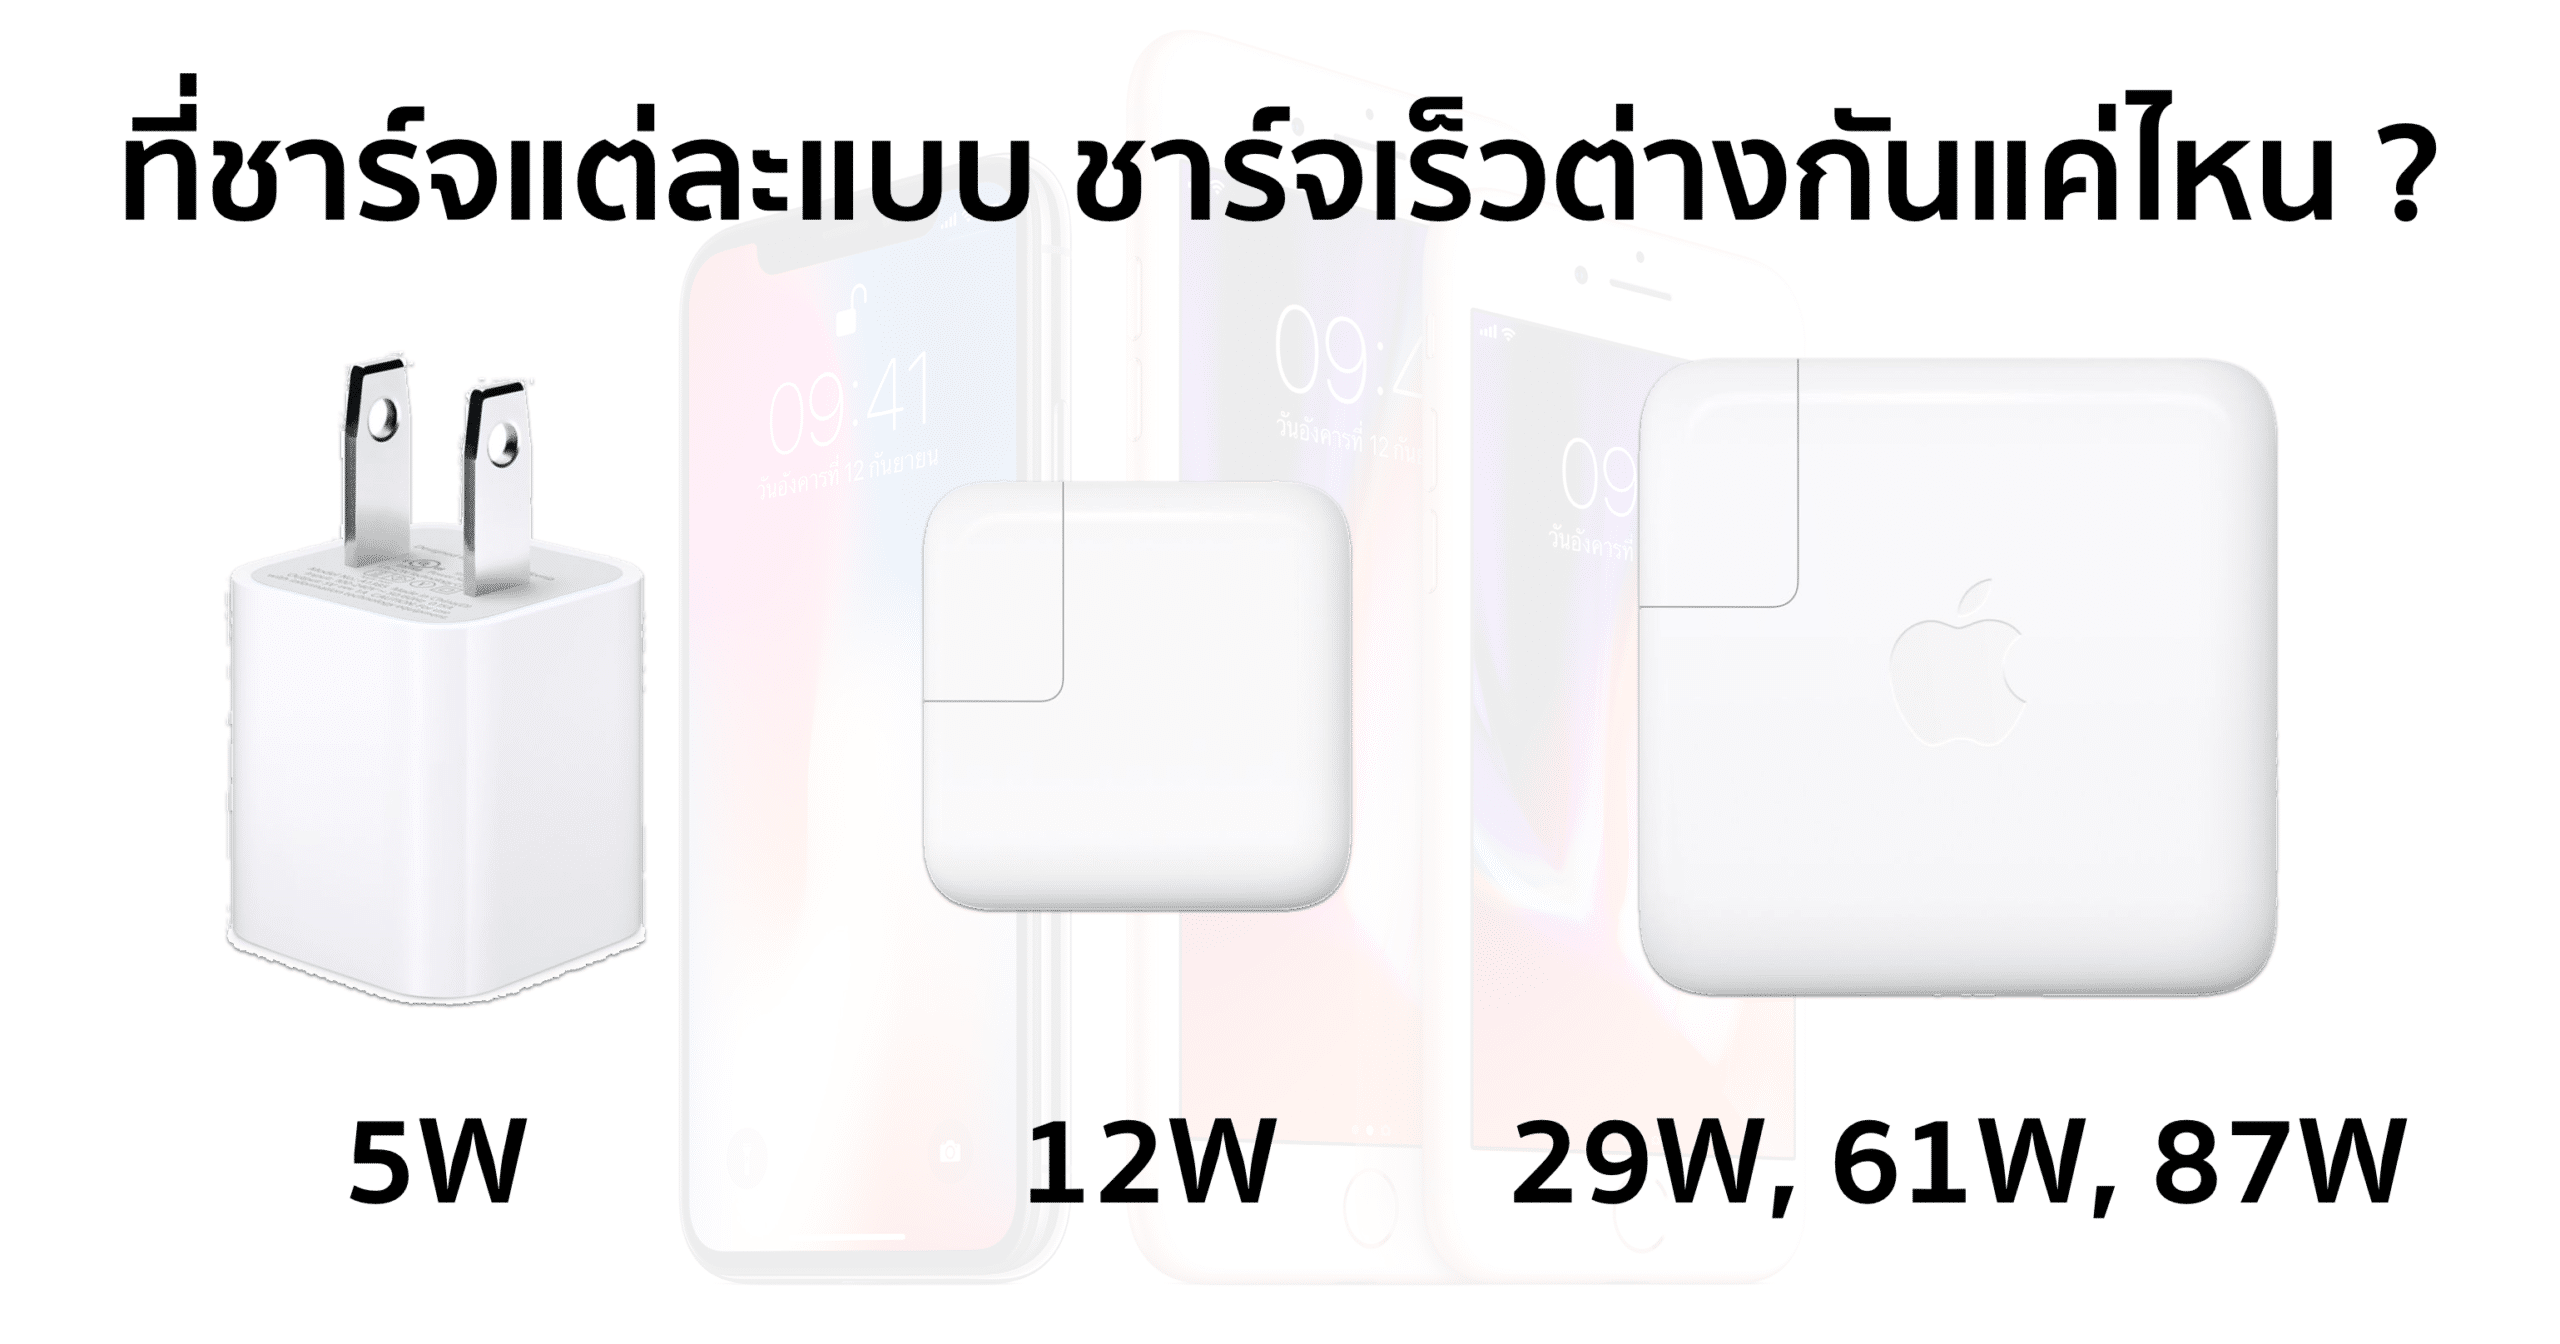 iphone-8-fast-charger-speed-comparison 4